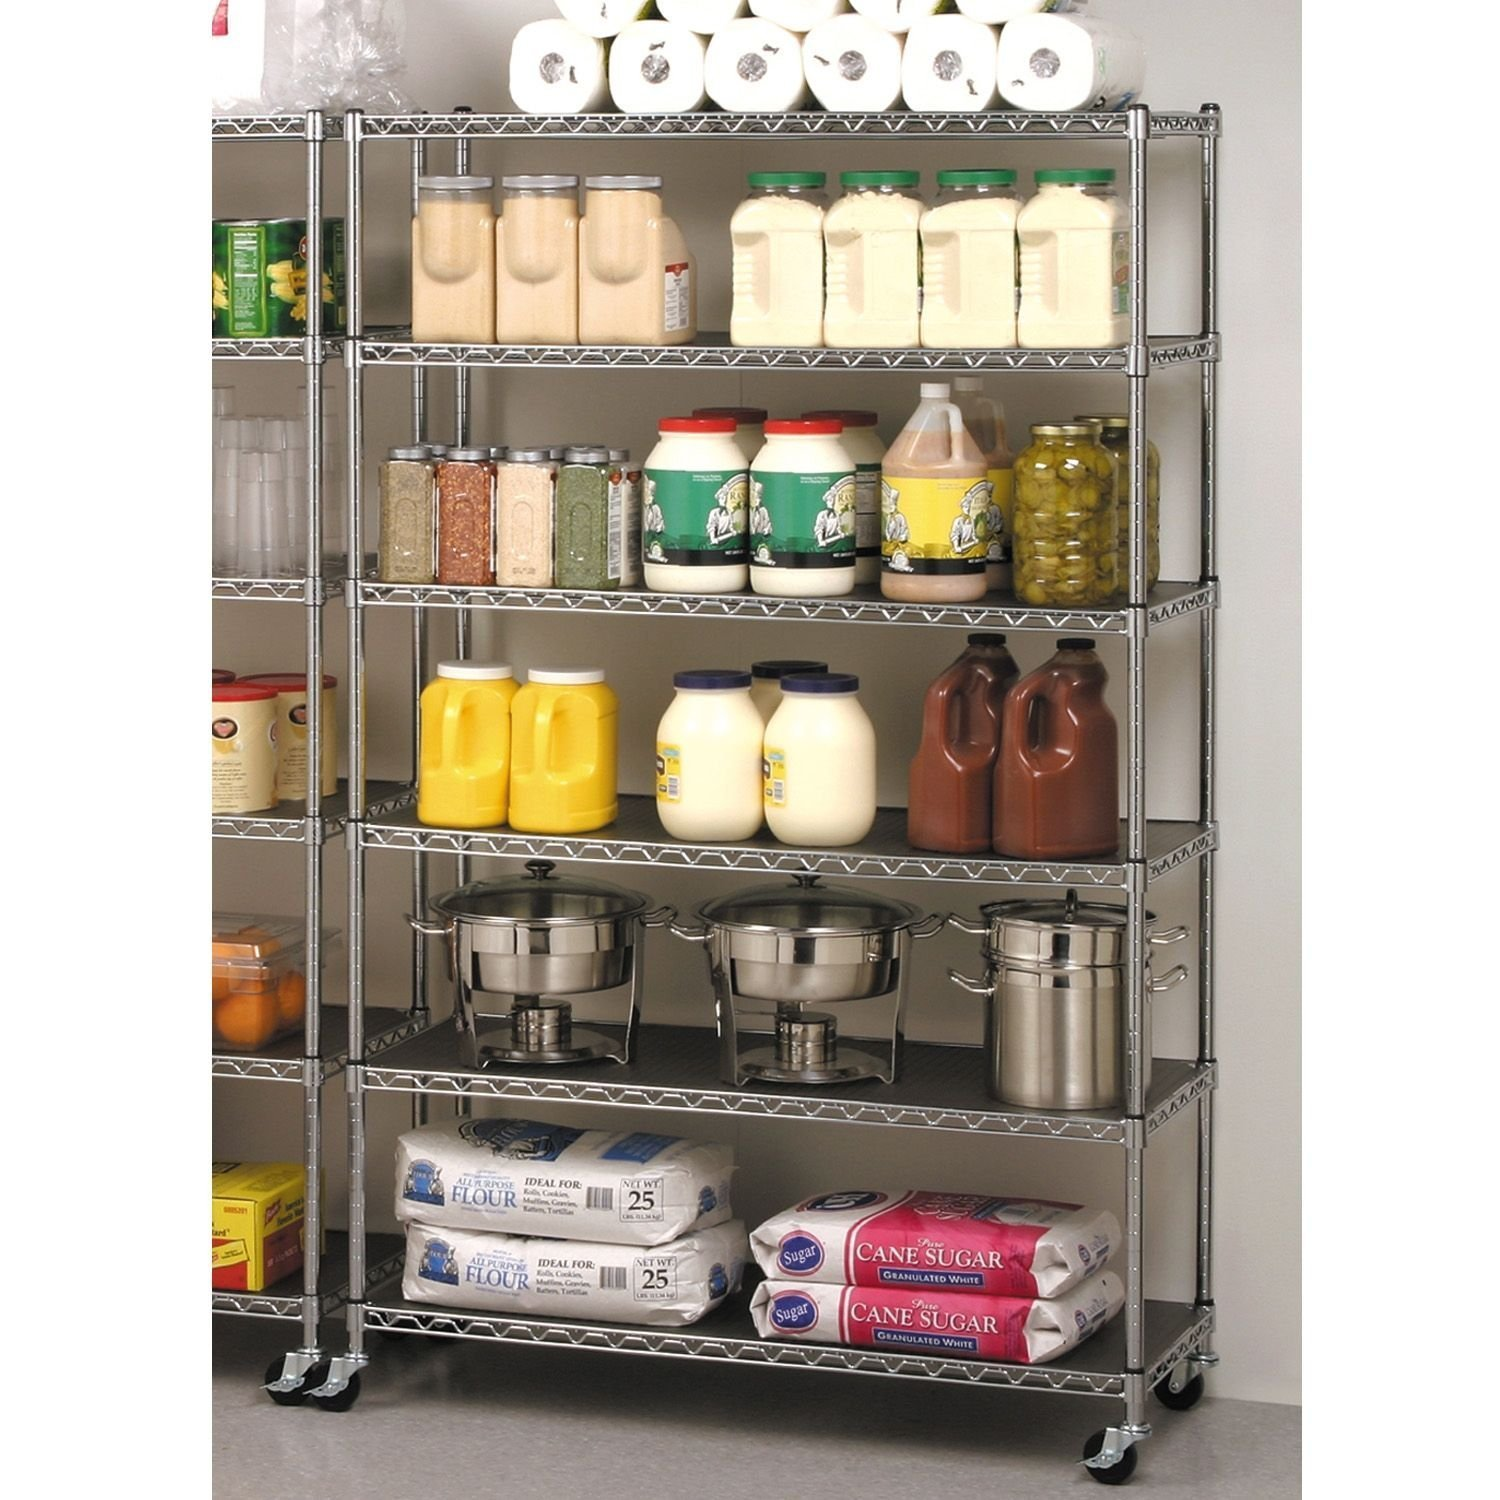 Com Storage Shelving Unit Cover Fits Racks 48 Wx24 Dx72 H Only Grey Color Home Kitchen